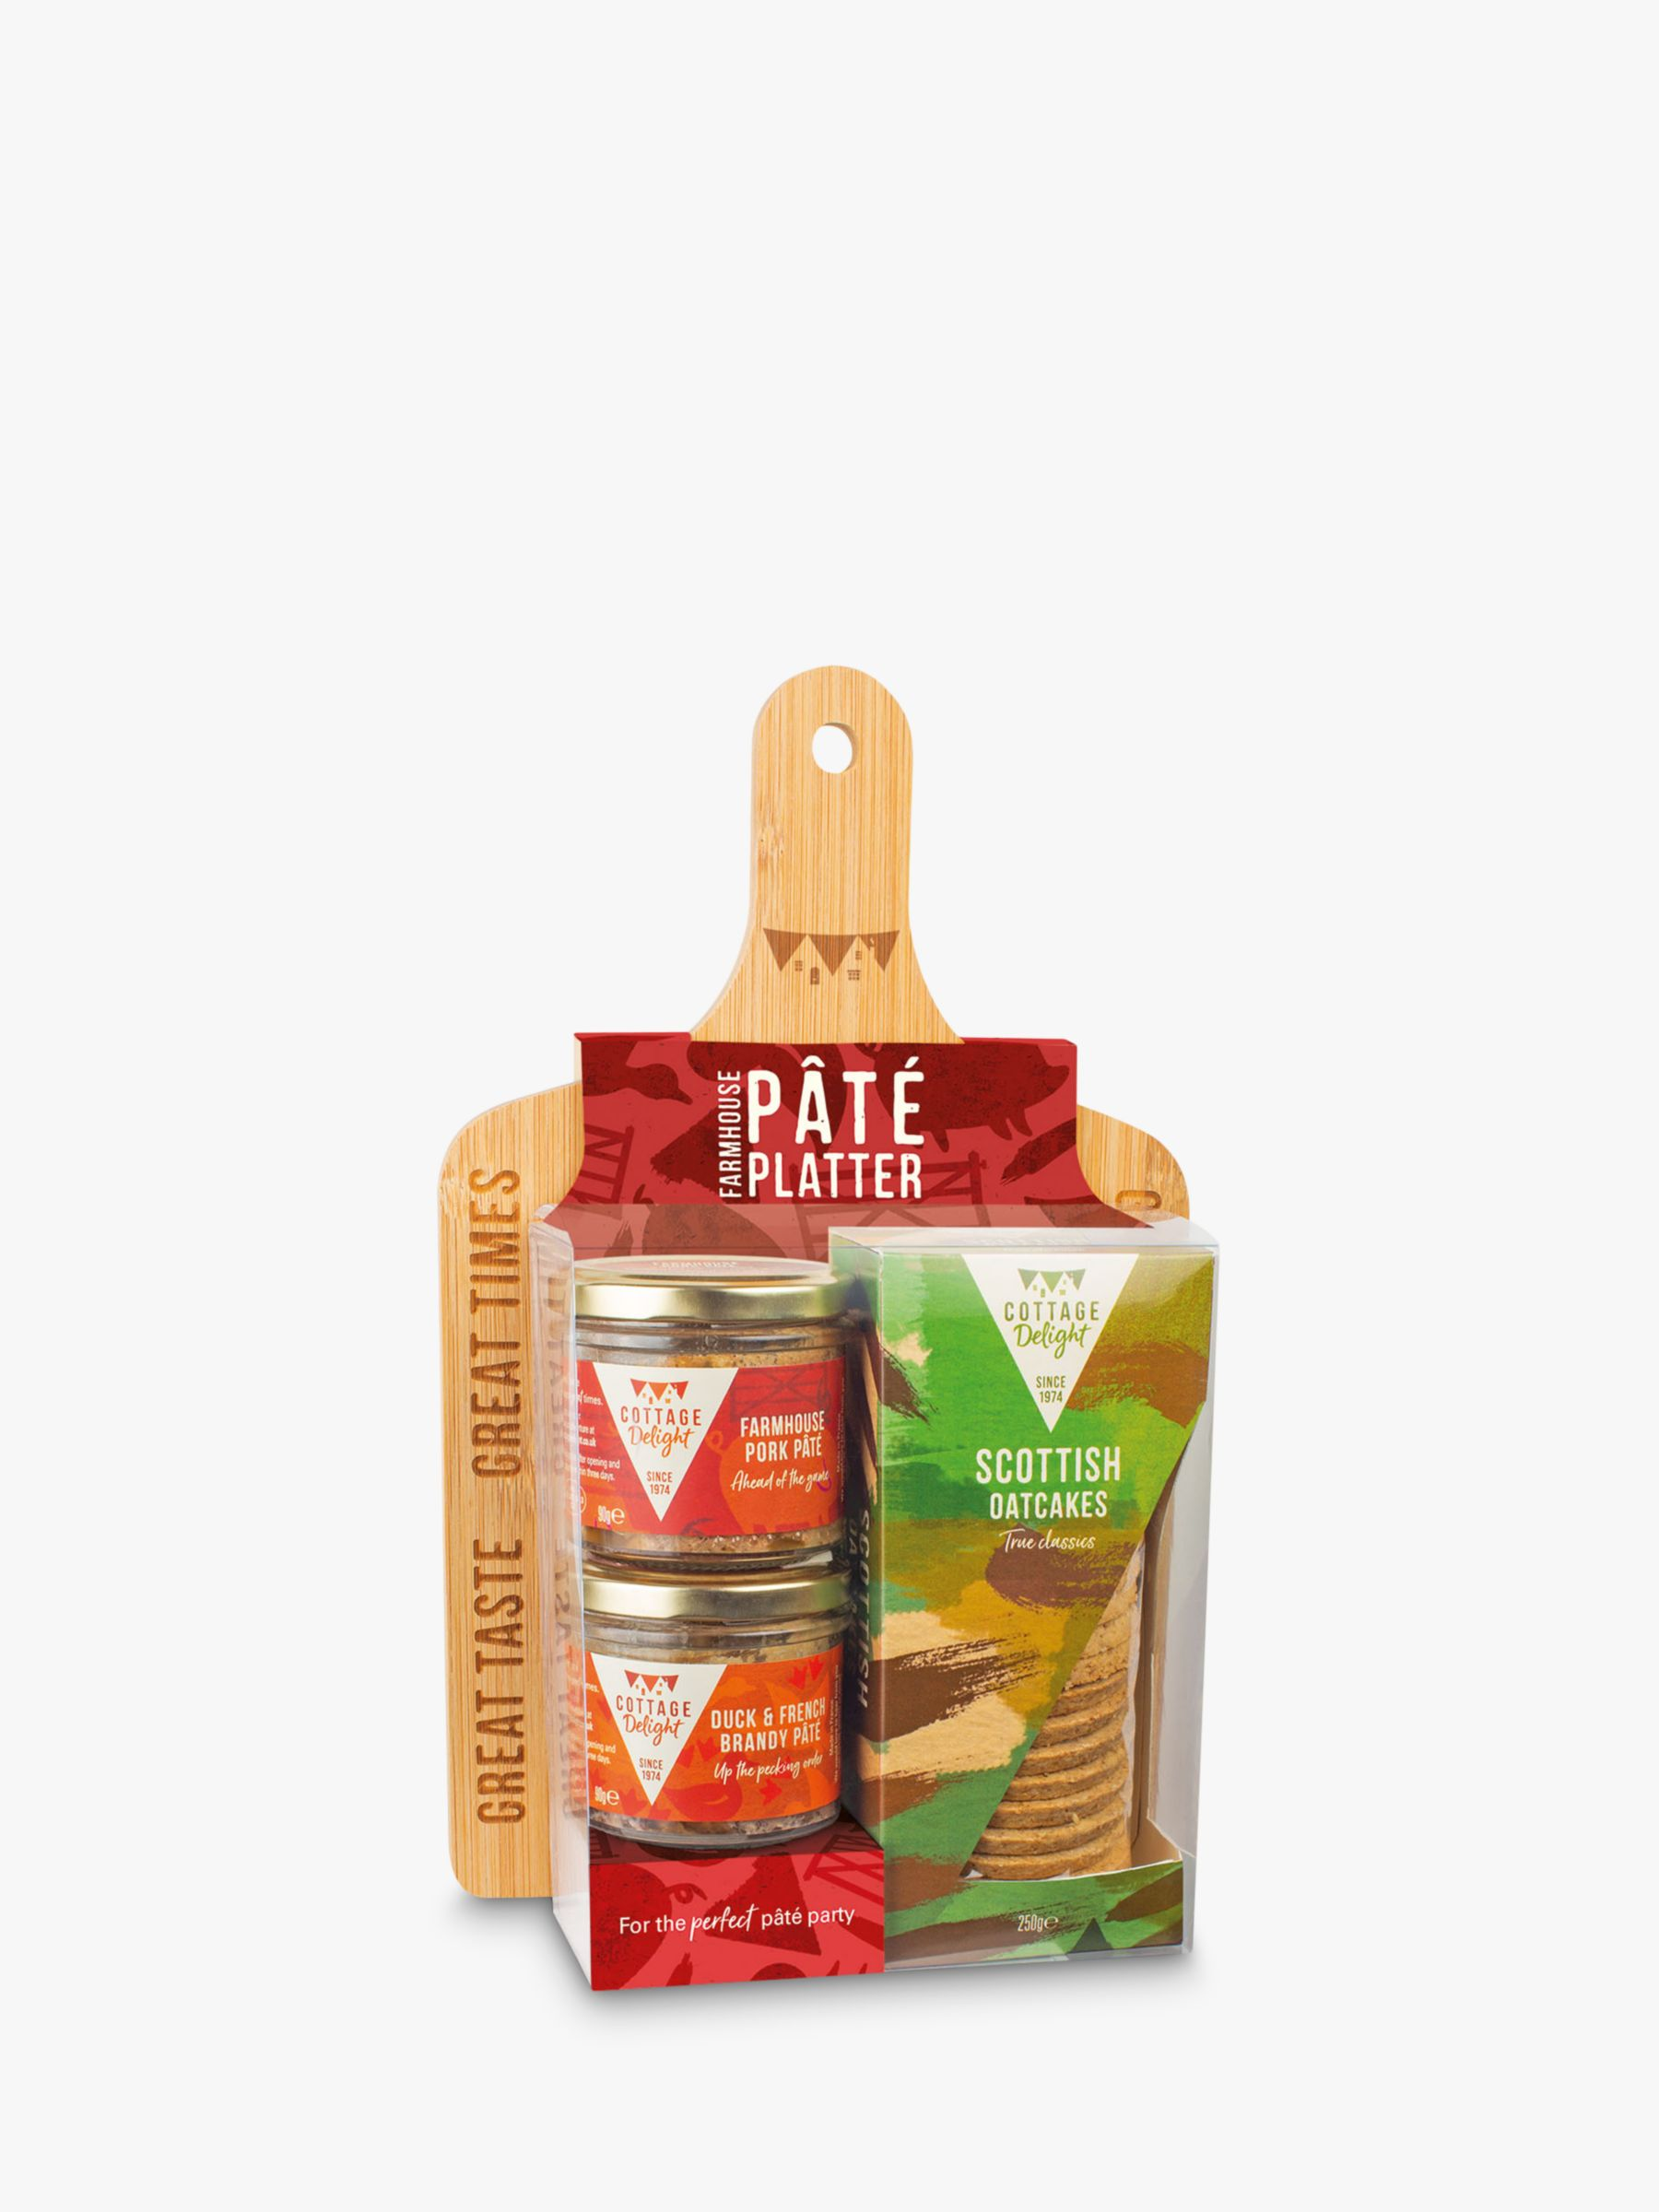 Cottage Delight Cottage Delight Pate Platter, 1kg